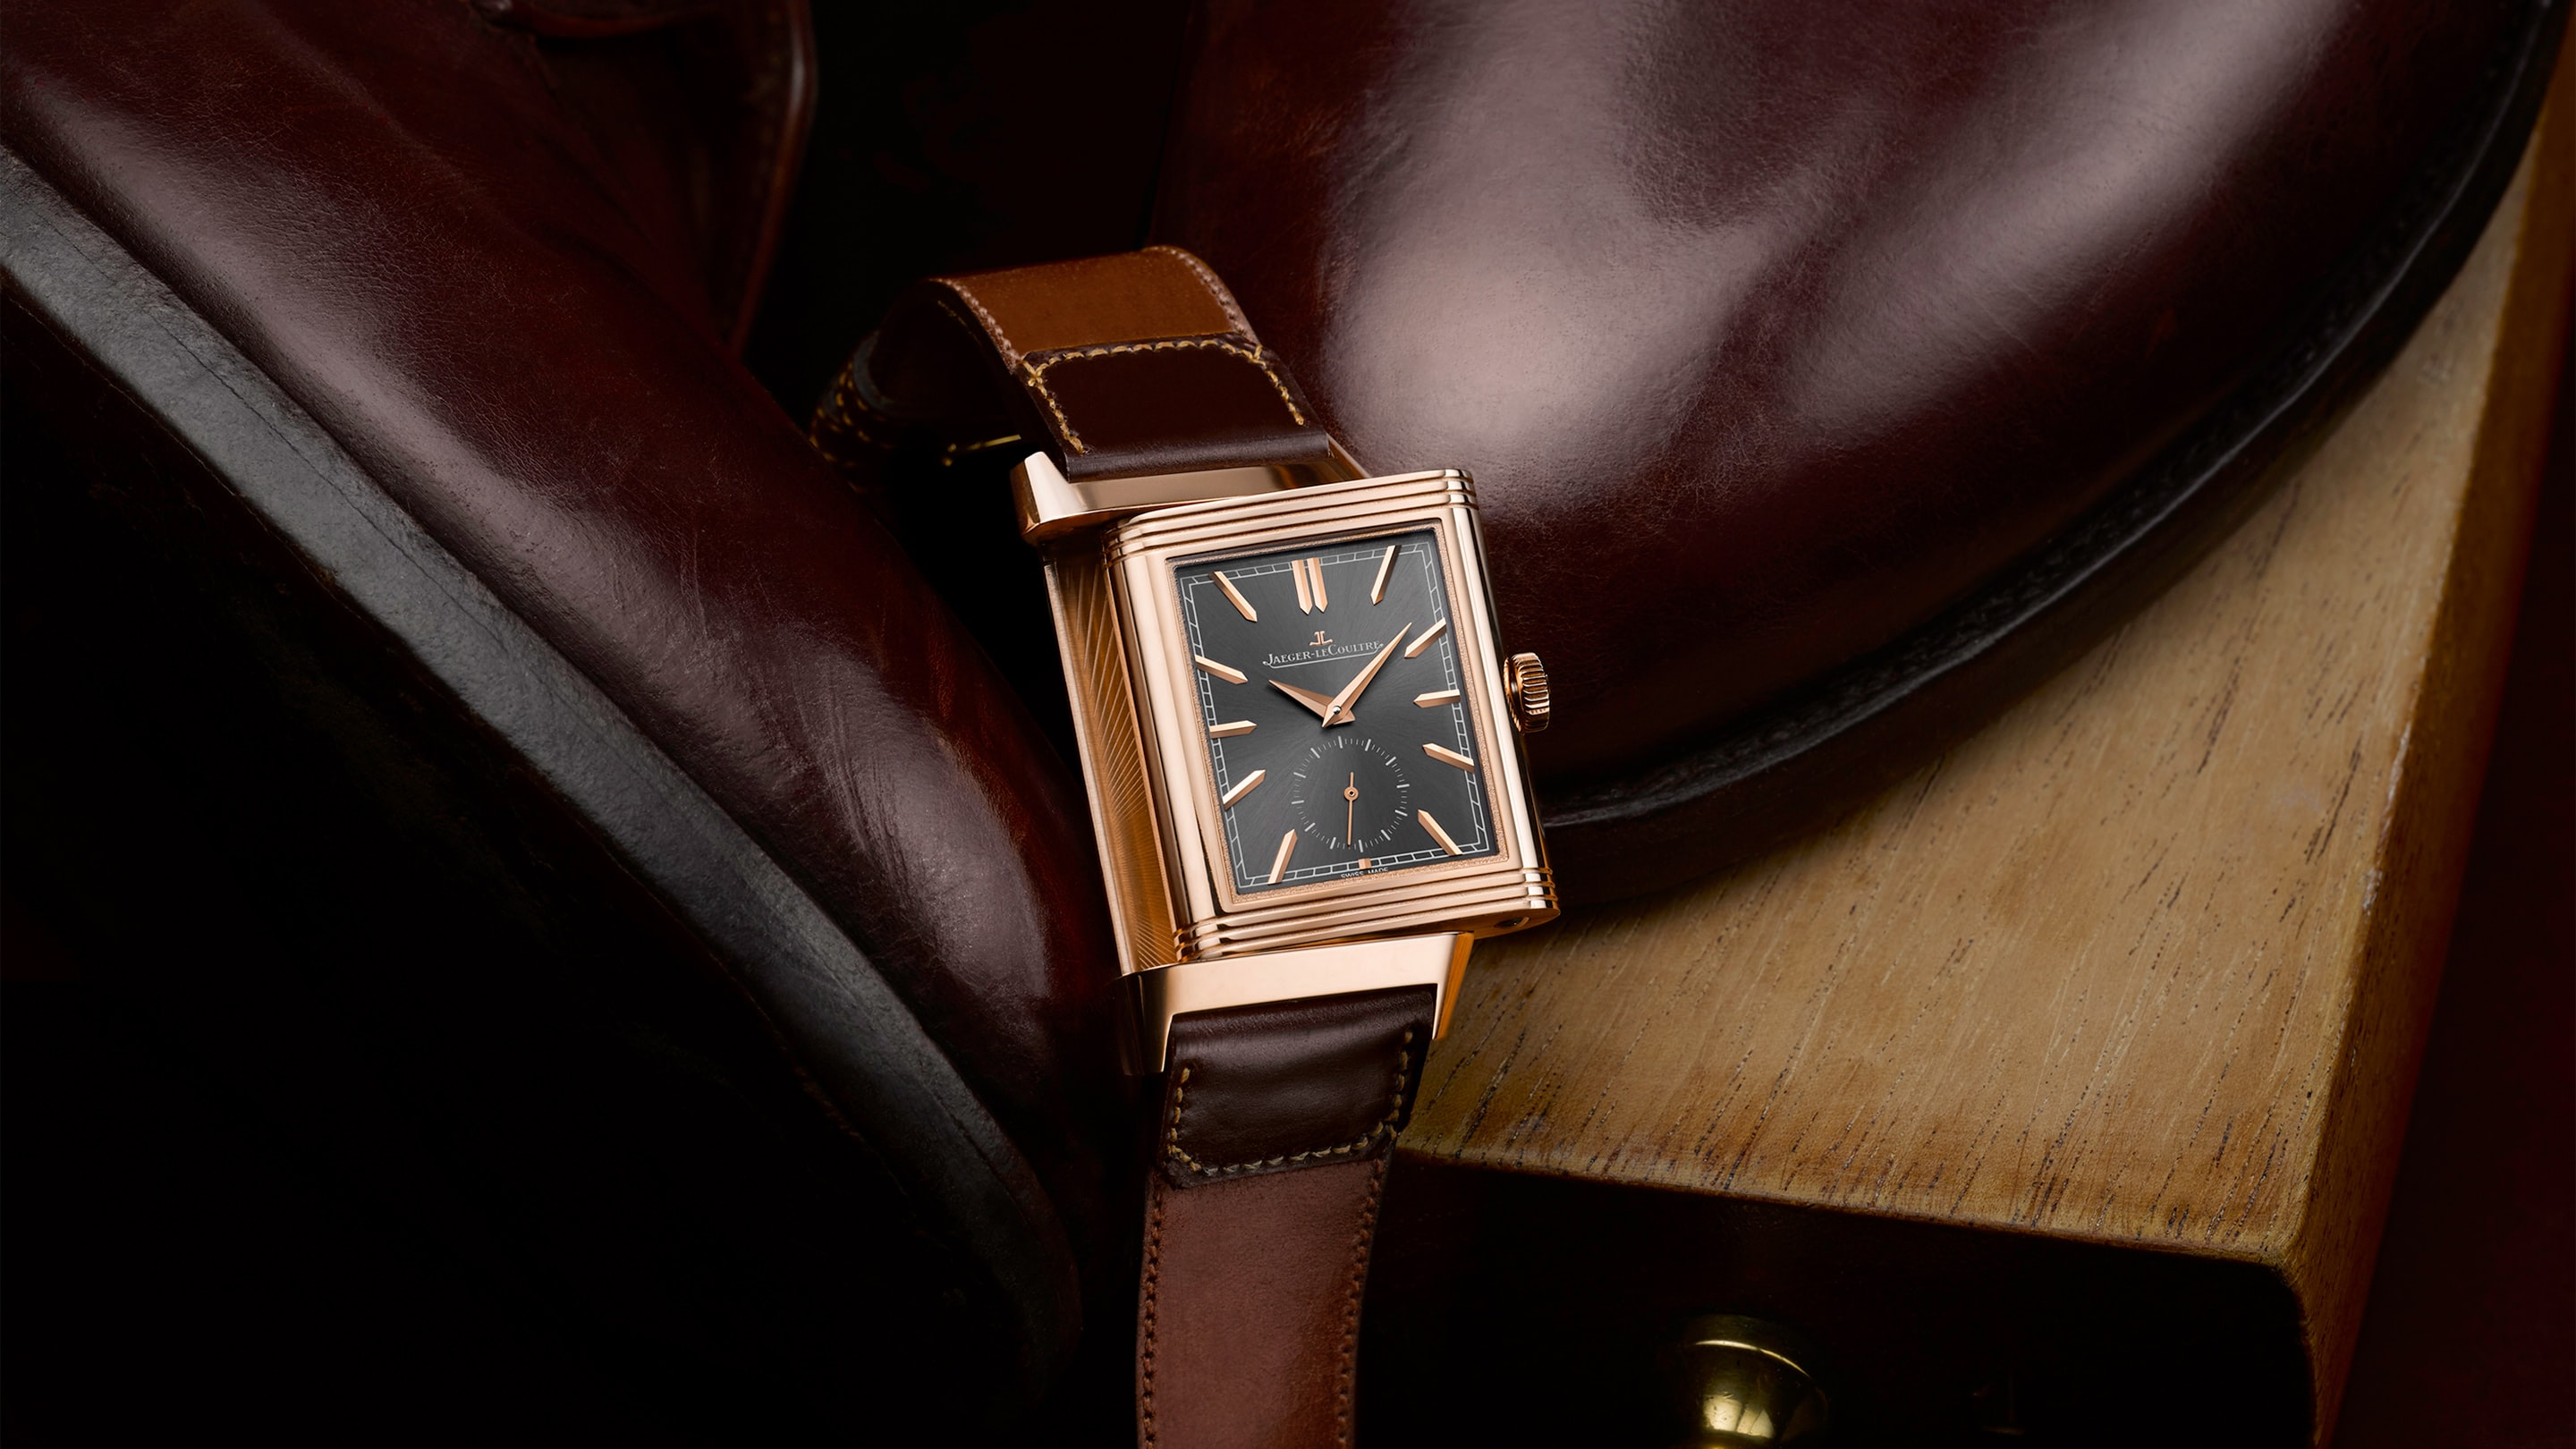 Introducing: The Jaeger-LeCoultre Reverso Tribute Duoface